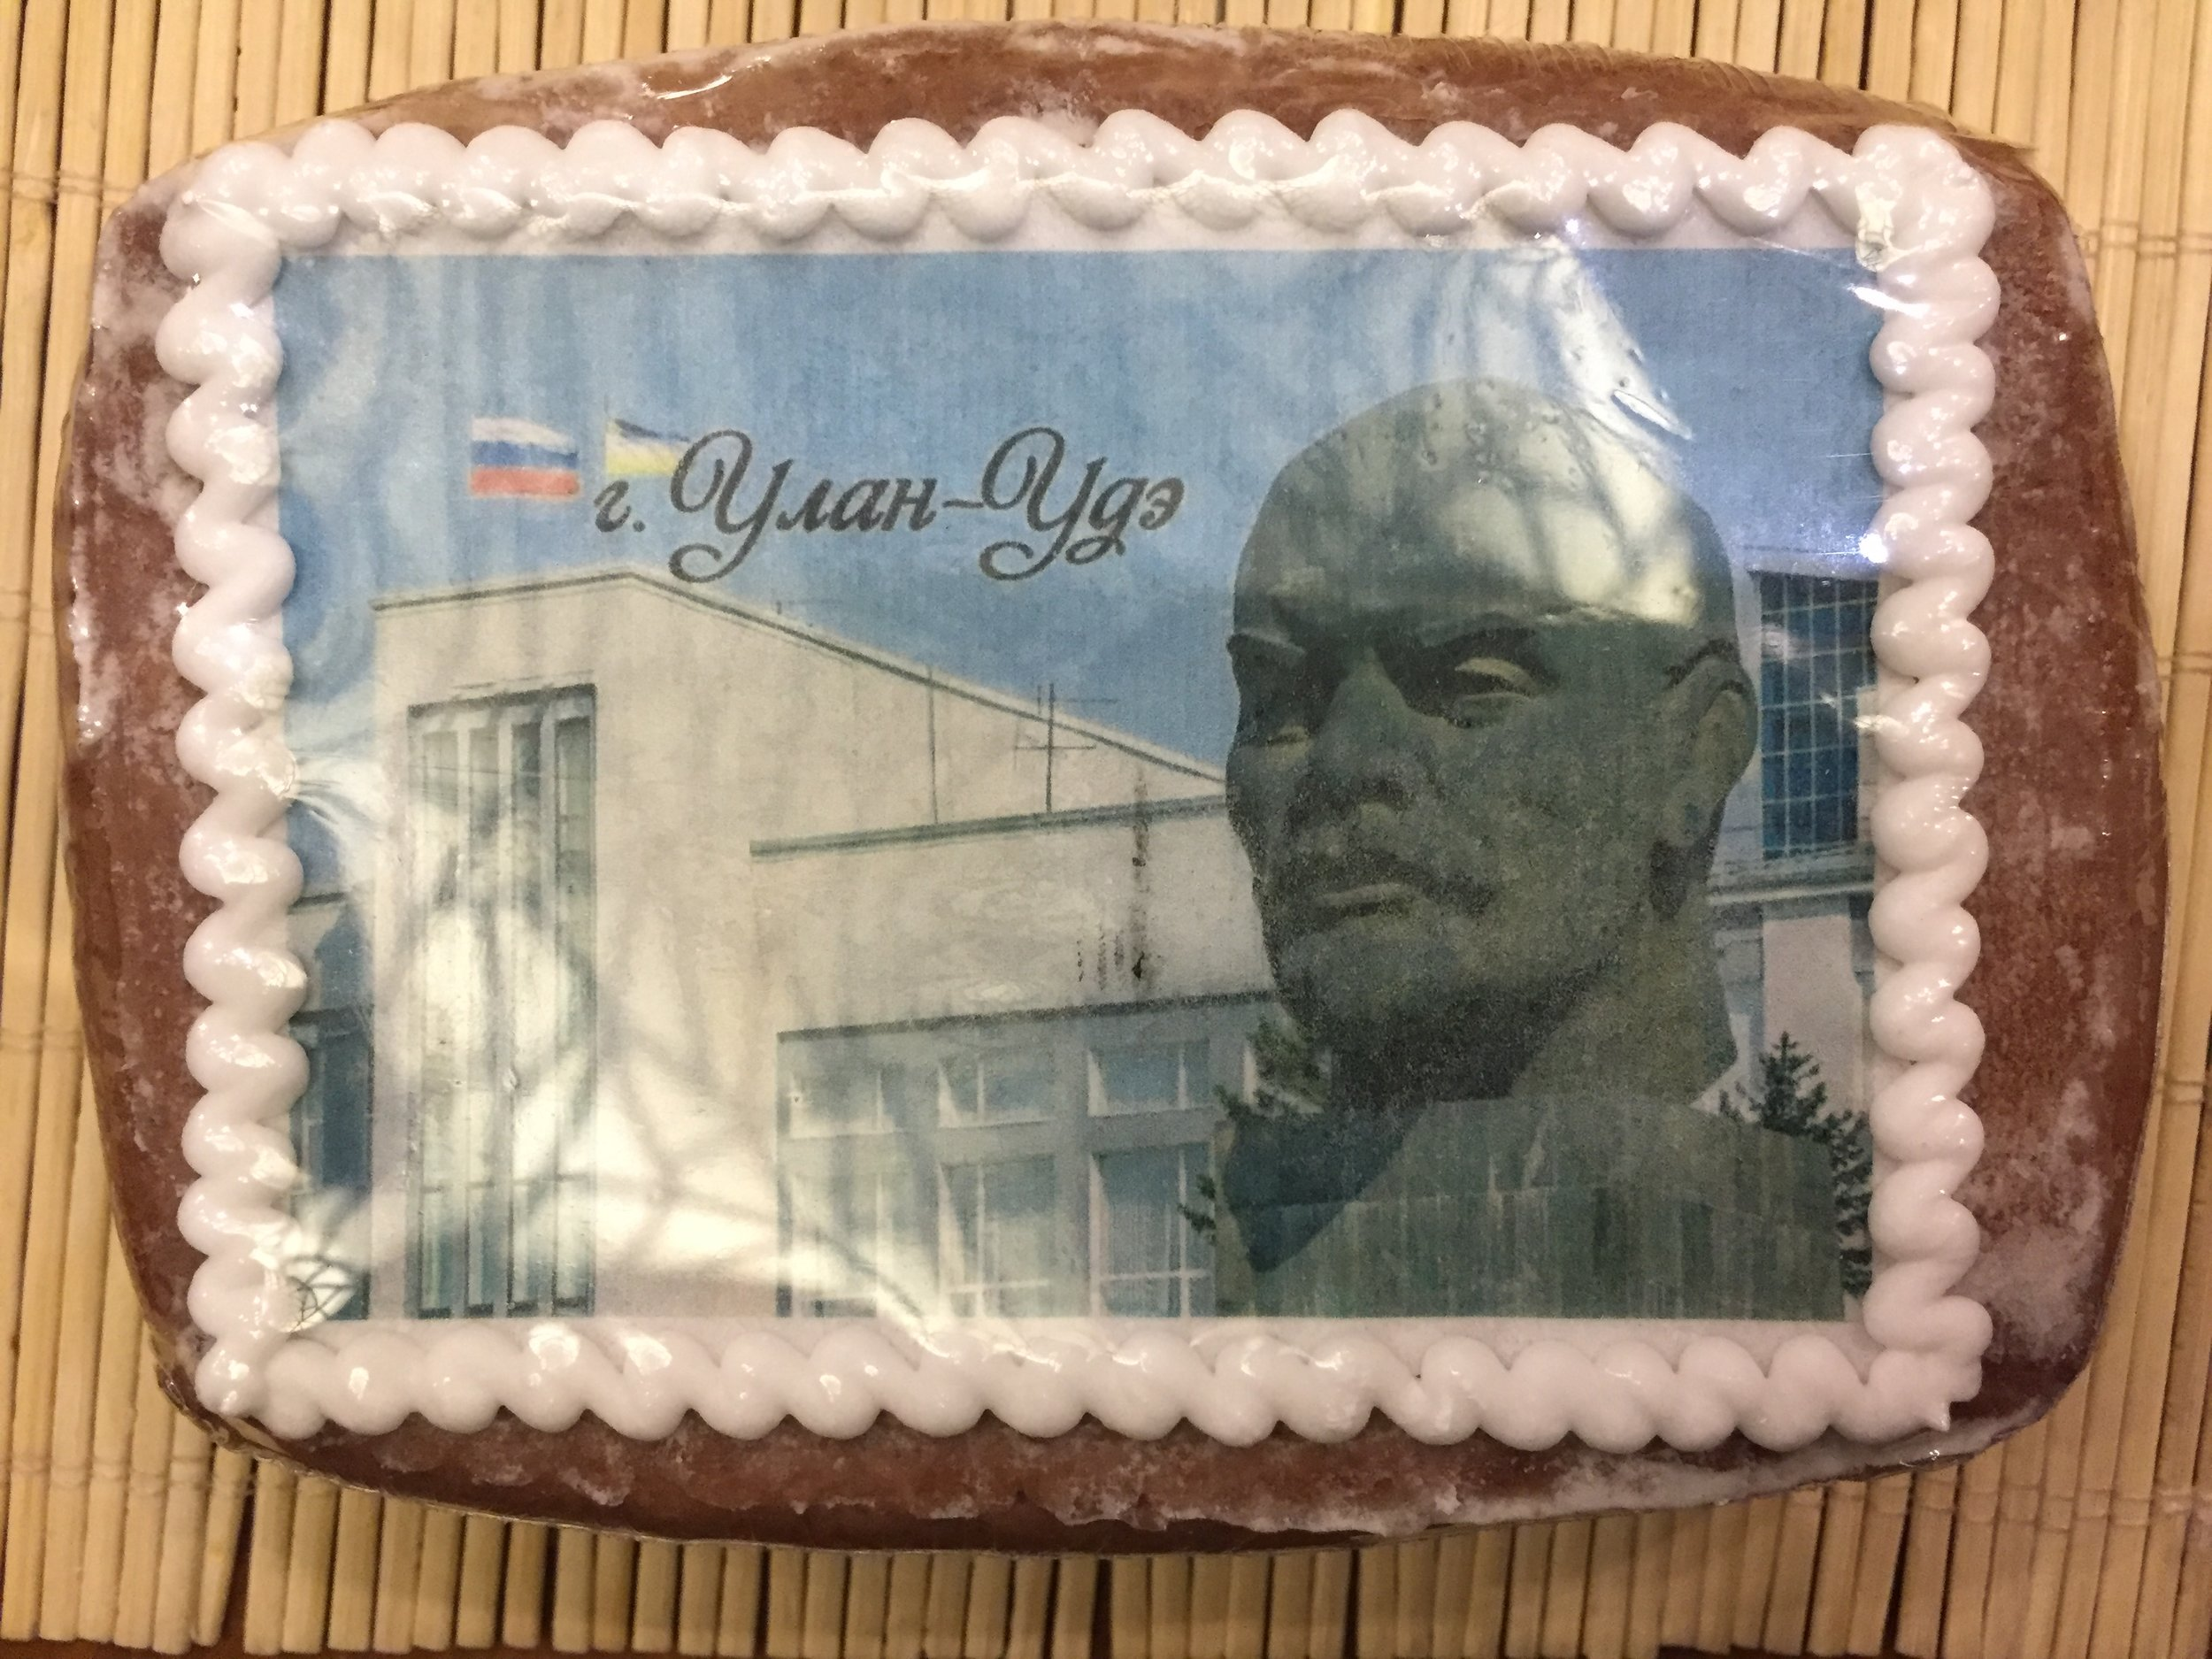 In Ulan-Ude, monumental socialist realism meets pop cuisine in this inimitable Lenin head gingerbread.